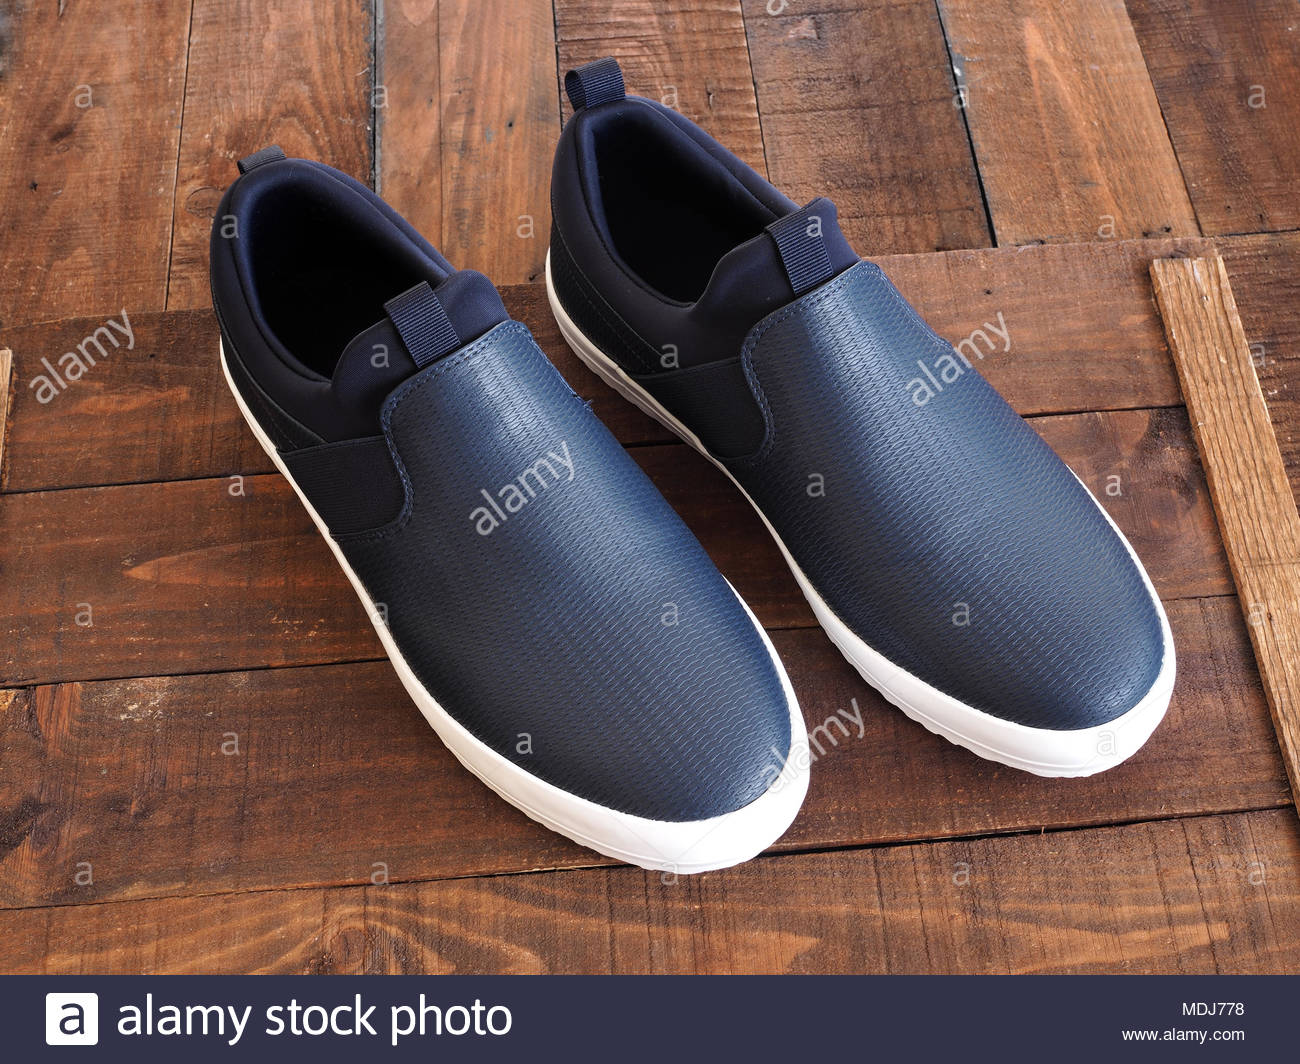 Men's dark blue slip on casual shoes, on dark wooden background - Stock Image